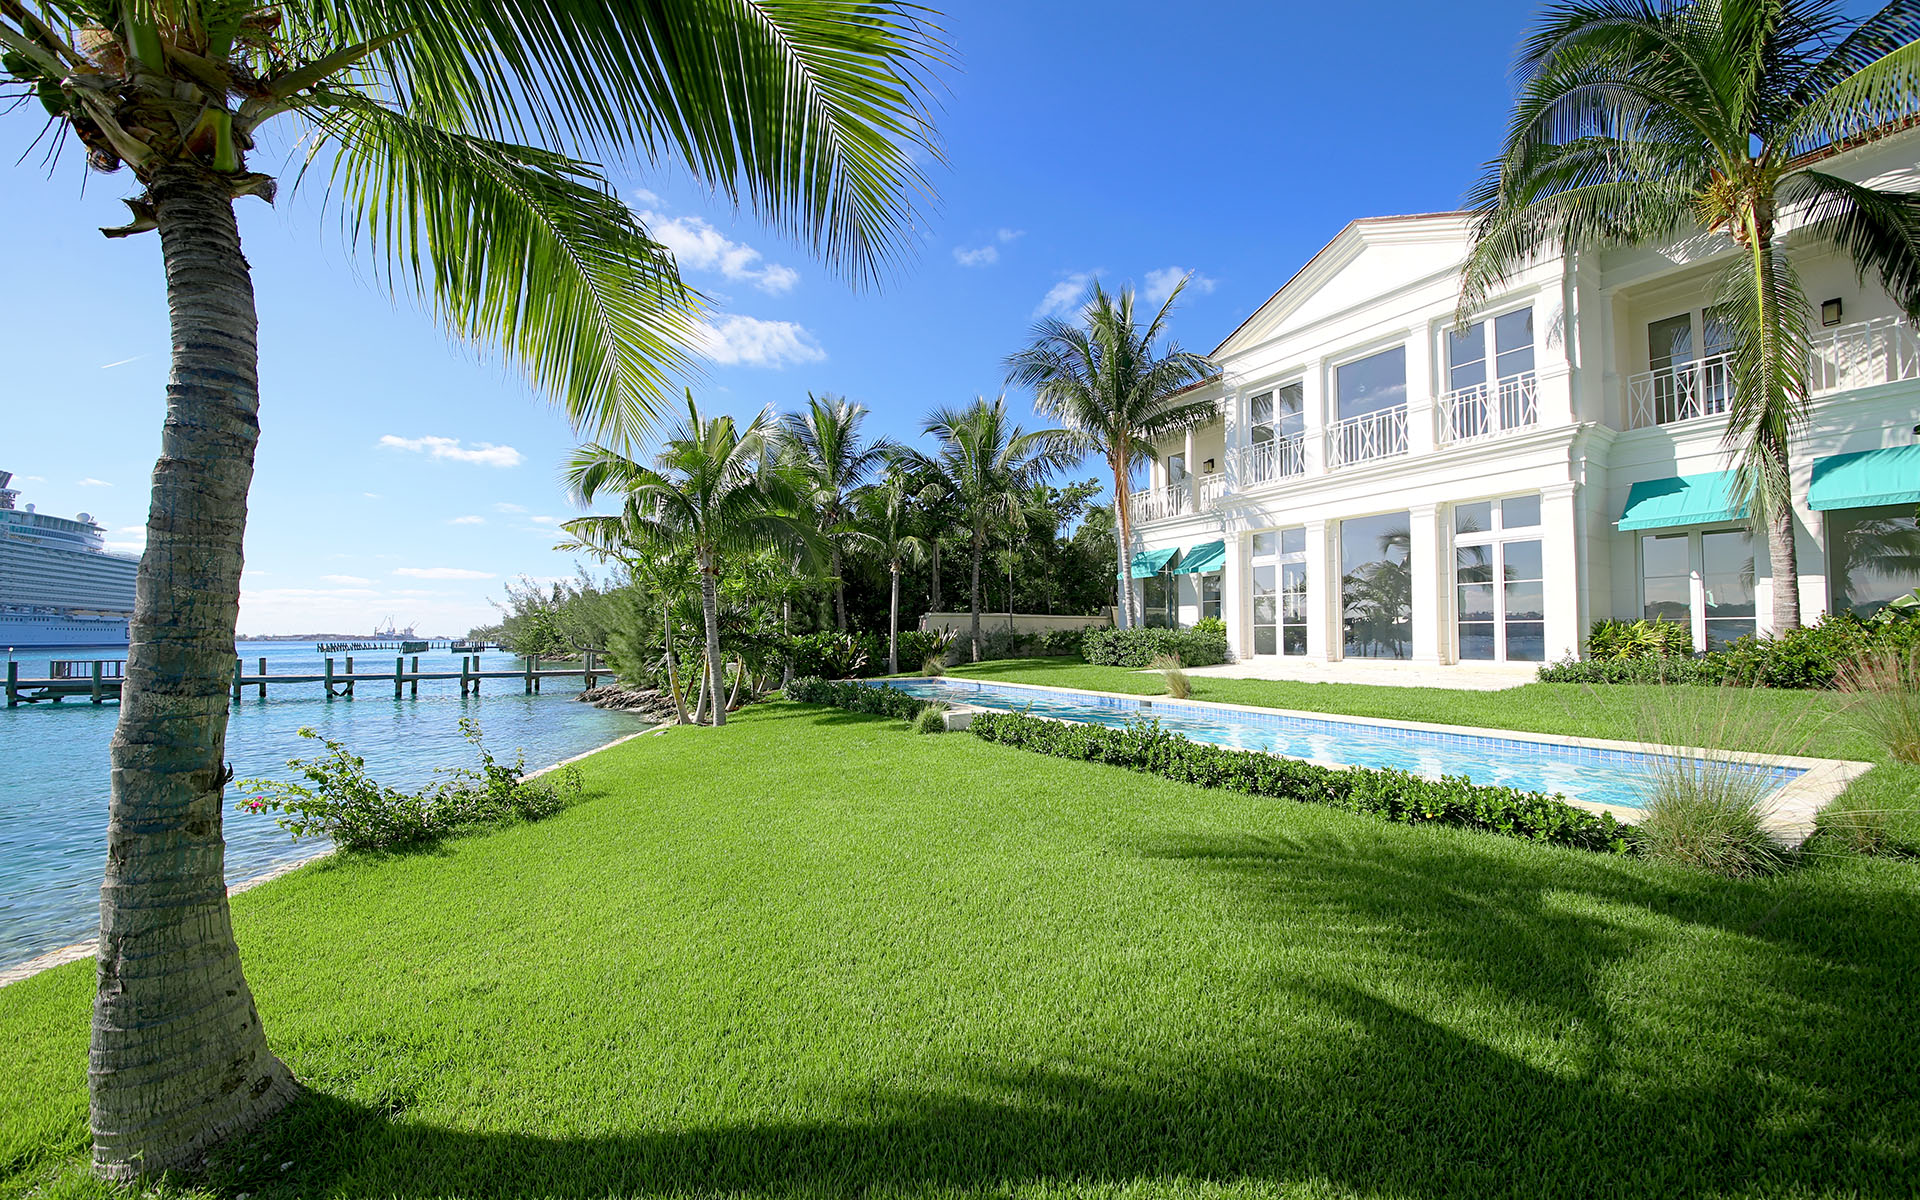 Single Family Home for Sale at Gorgeous Waterfront Home on Paradise Island - MLS 31737 Paradise Island, Nassau And Paradise Island, Bahamas